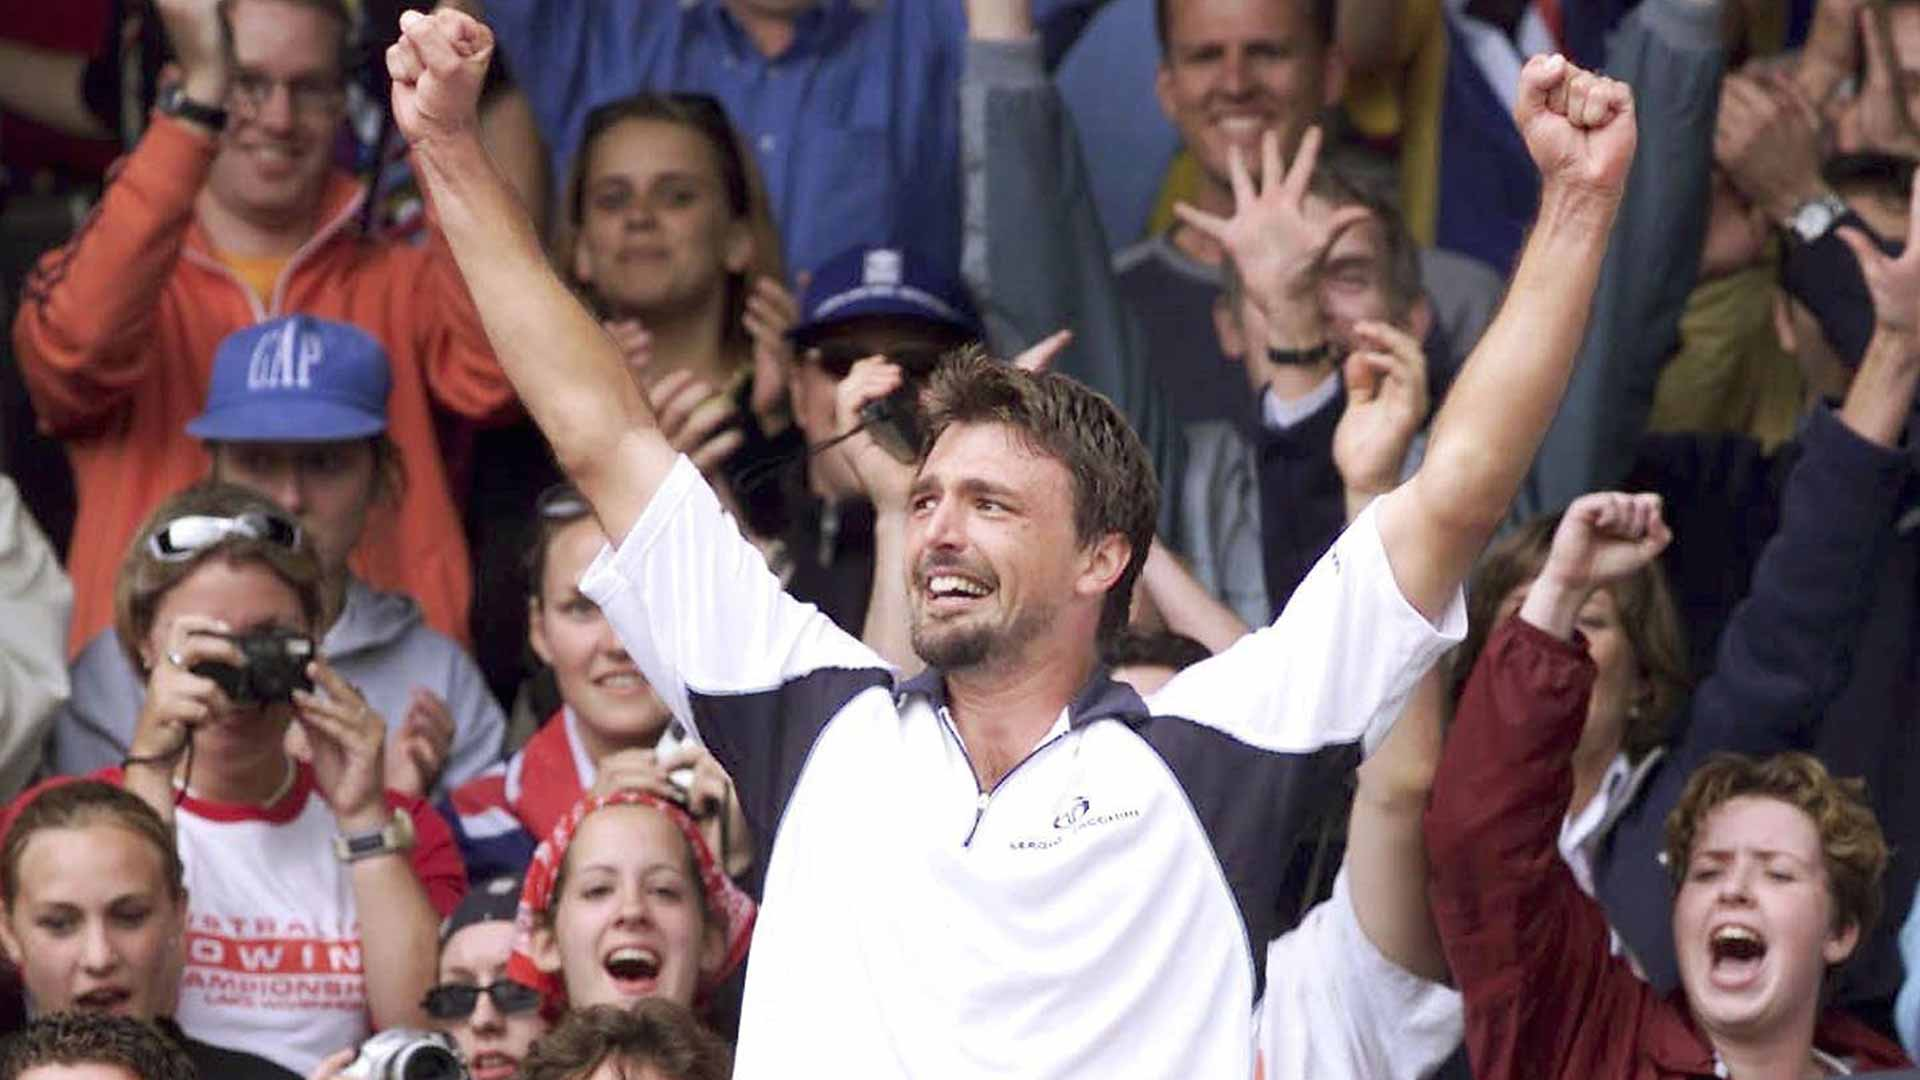 Goran Ivanisevic celebrates winning the 2001 Wimbledon title.